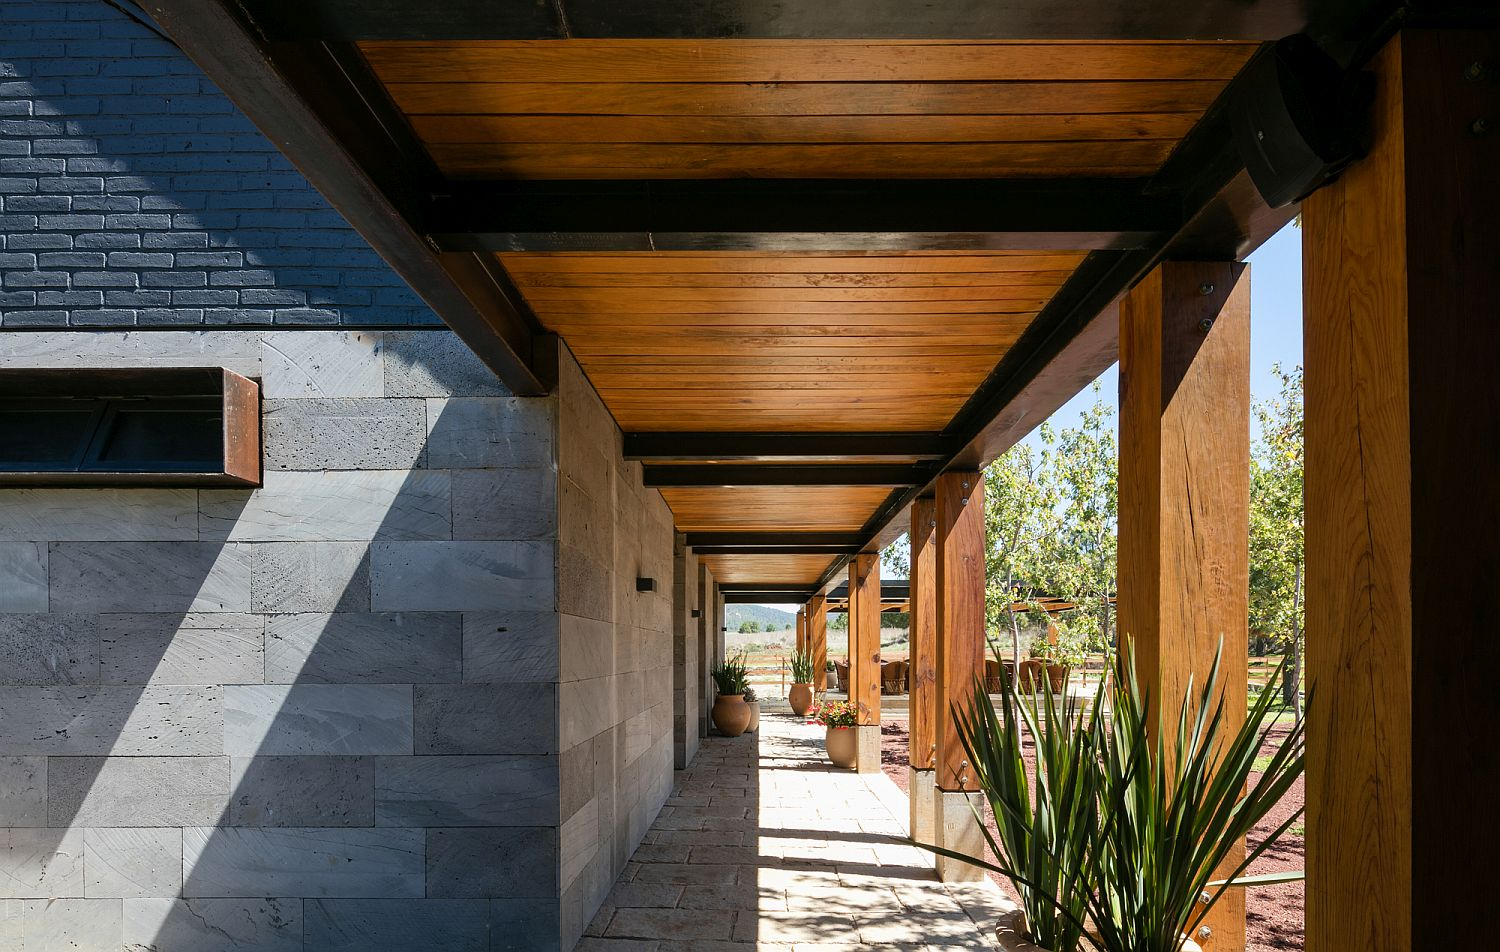 Cut volcanic rock and wood combined at the lovely ranch house